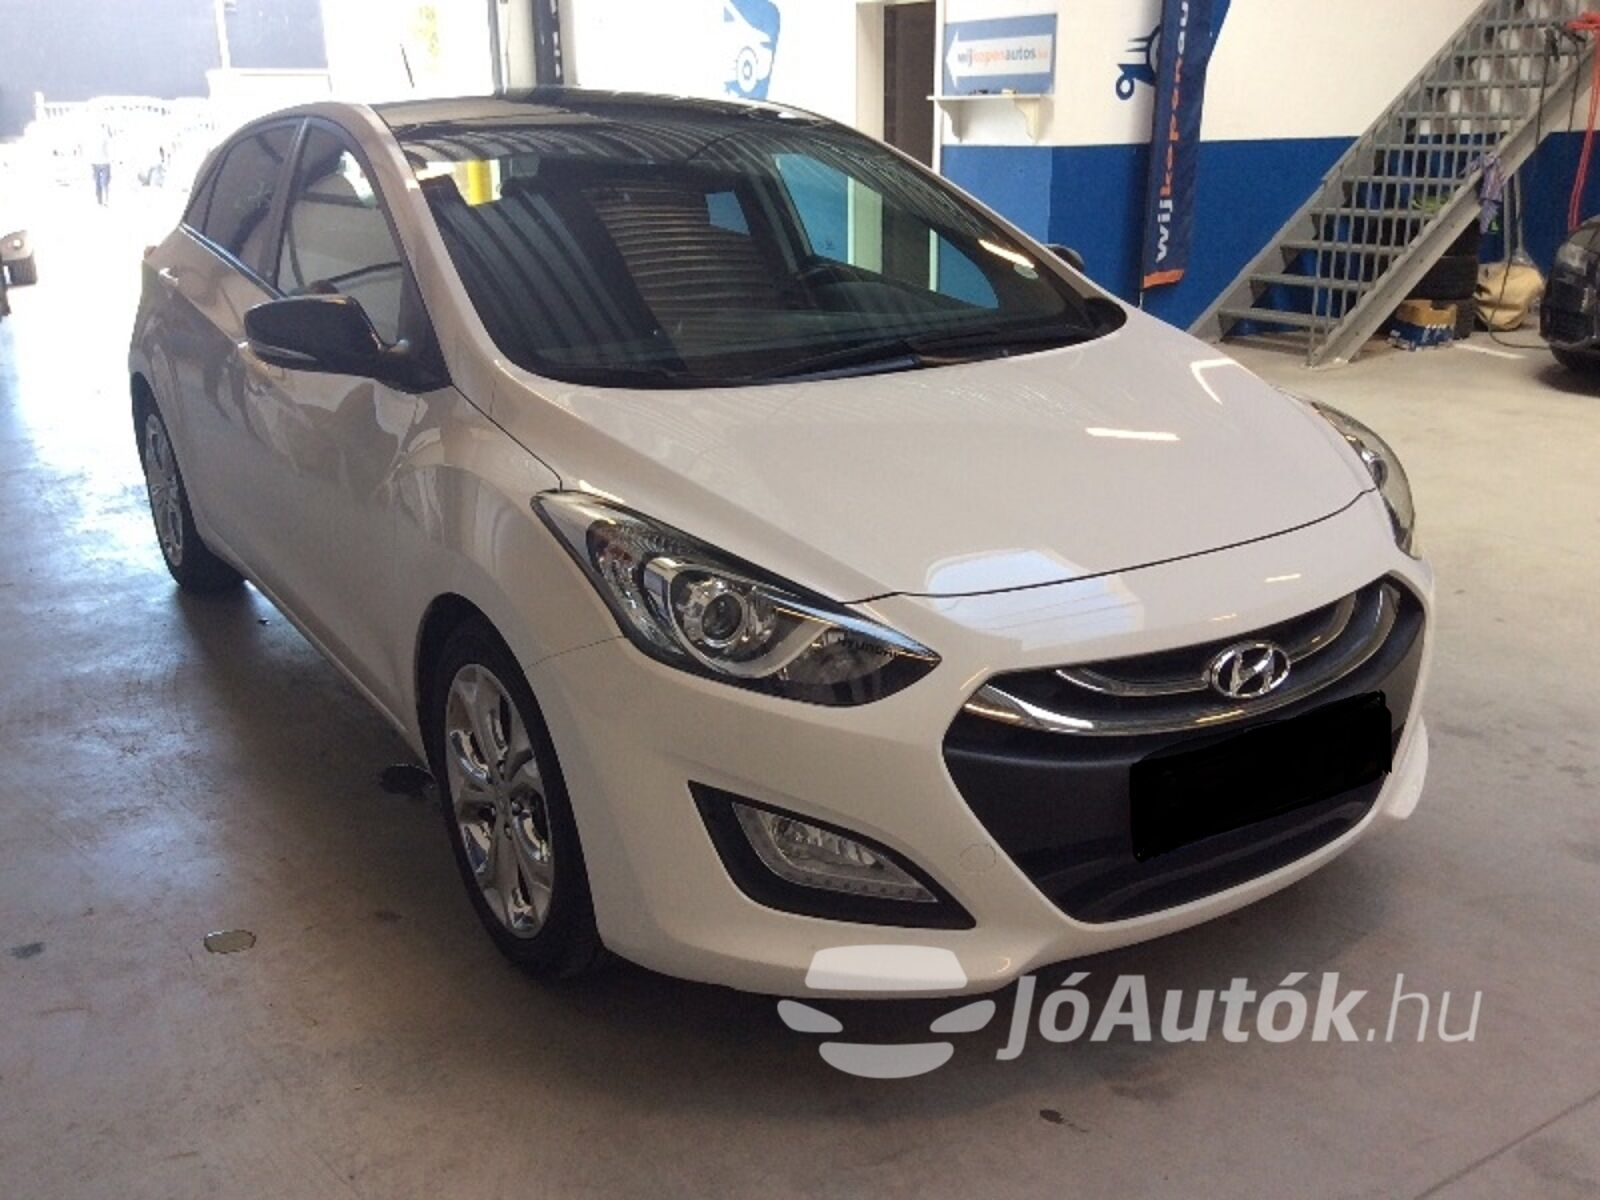 HYUNDAI i30 1.6 CRDi LP Business - jobb eleje